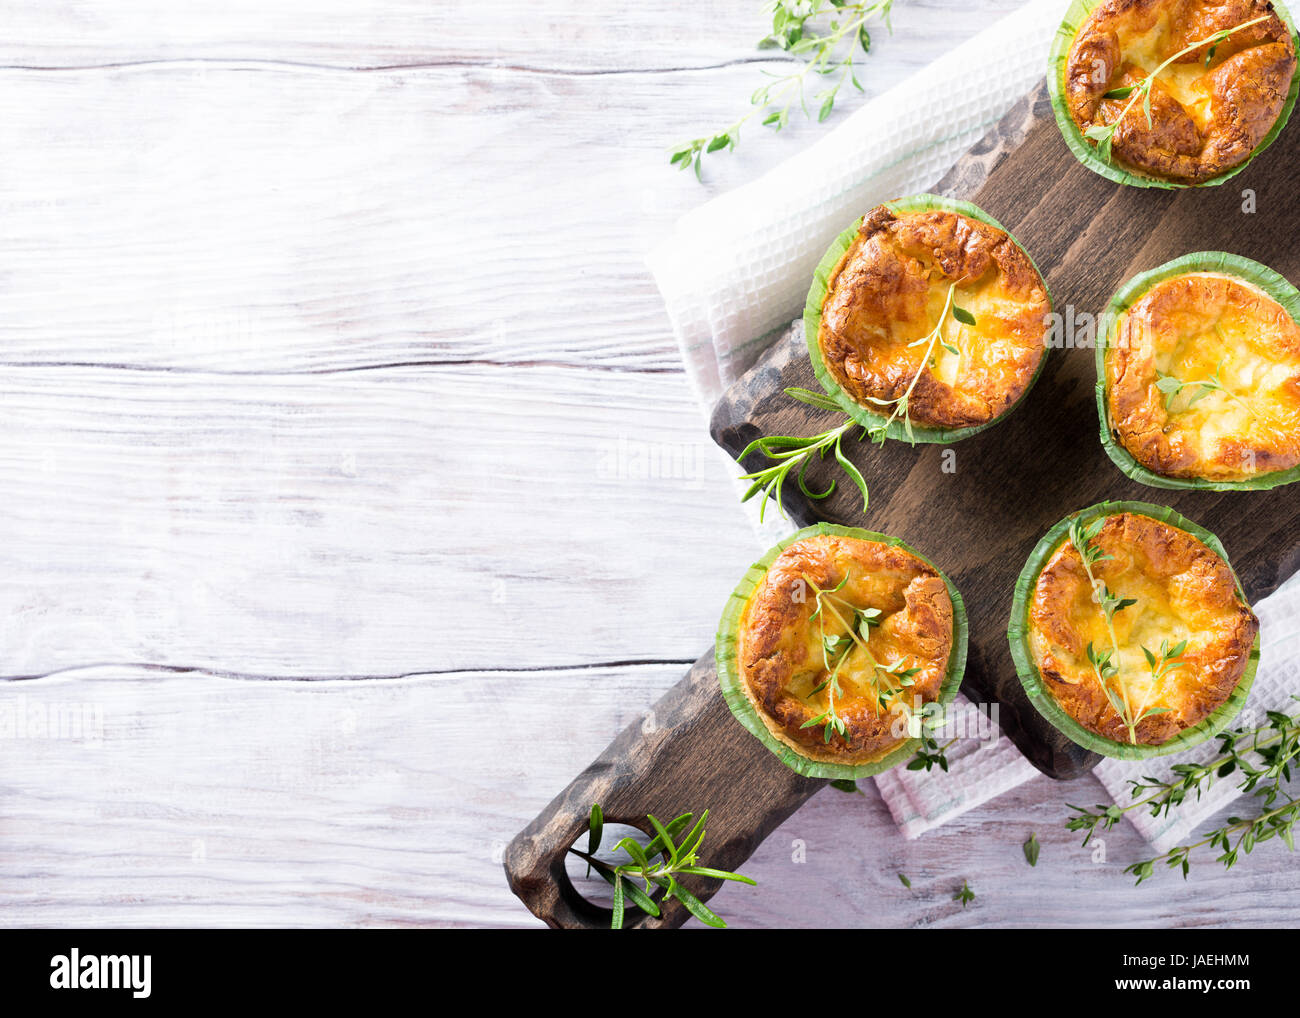 Savory cheddar cheese and leek mini quiches with thyme on dark wooden cutting board. Top view with copy space - Stock Image